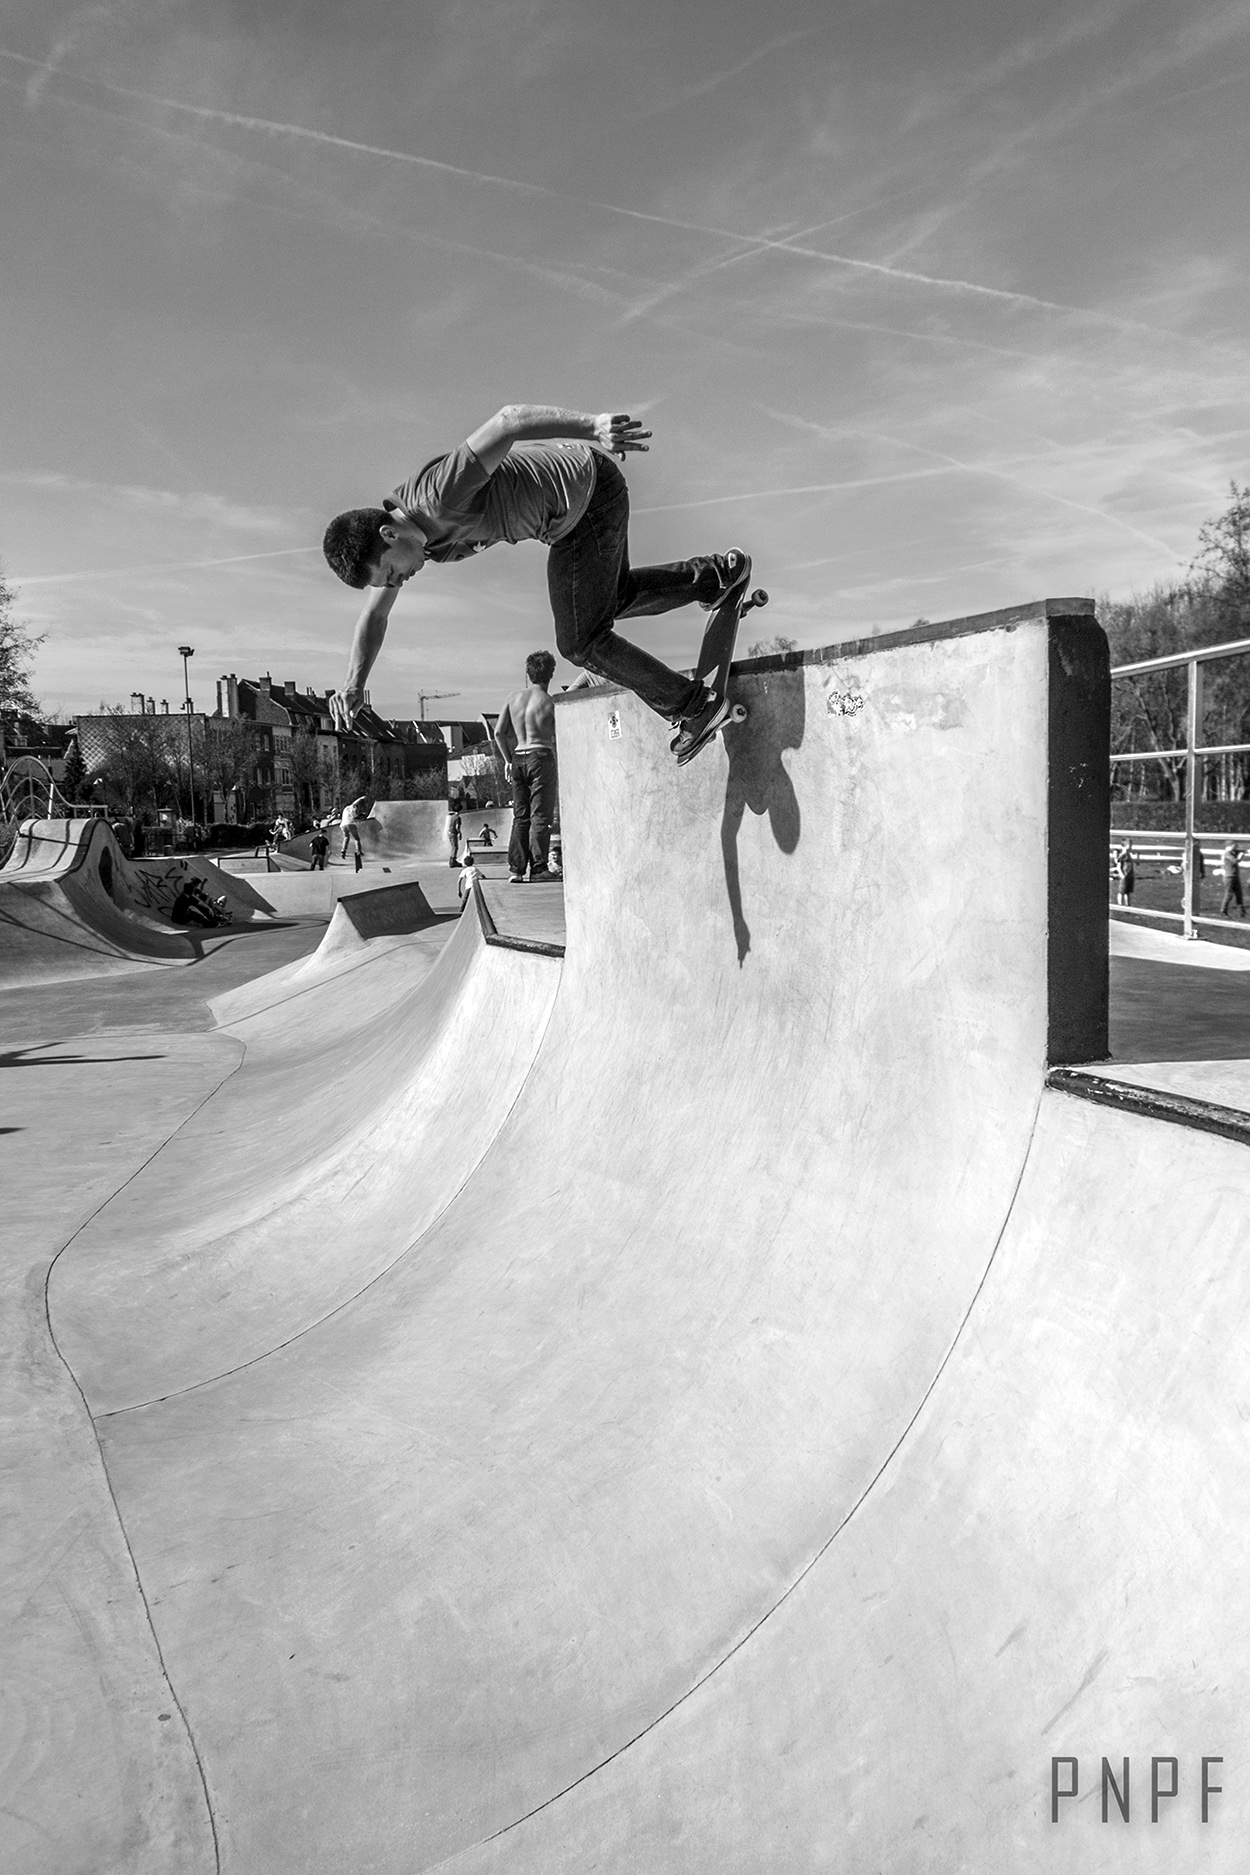 Rock 'n Roll by Unknown skater at Skatepark De Bres. Photo: PNPF